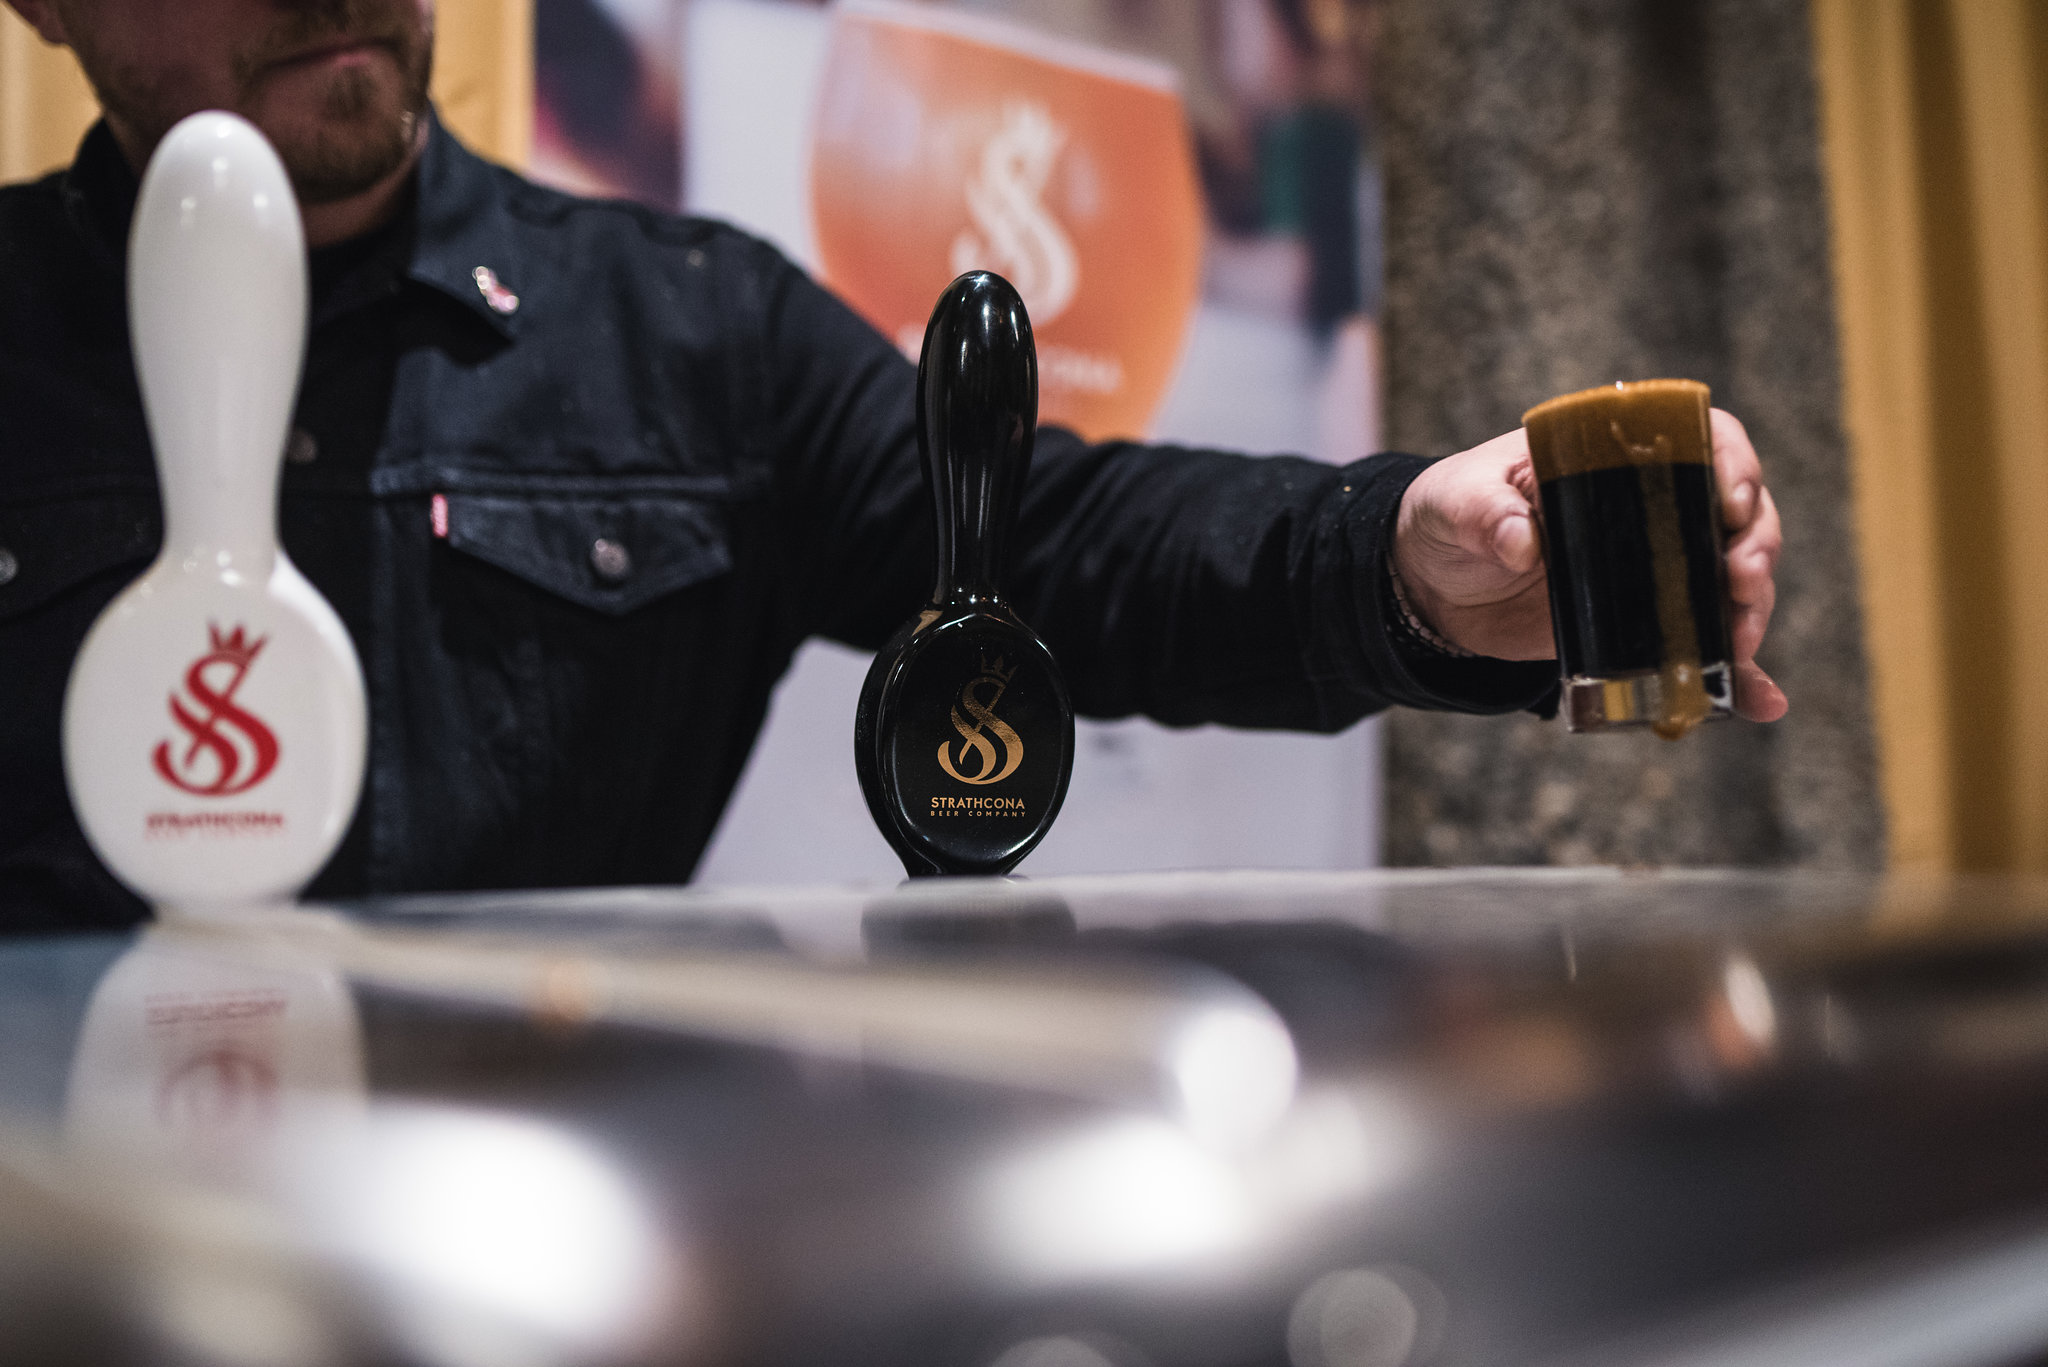 Coquitlam Craft Beer Festival Strathcona Beer Company vanpours